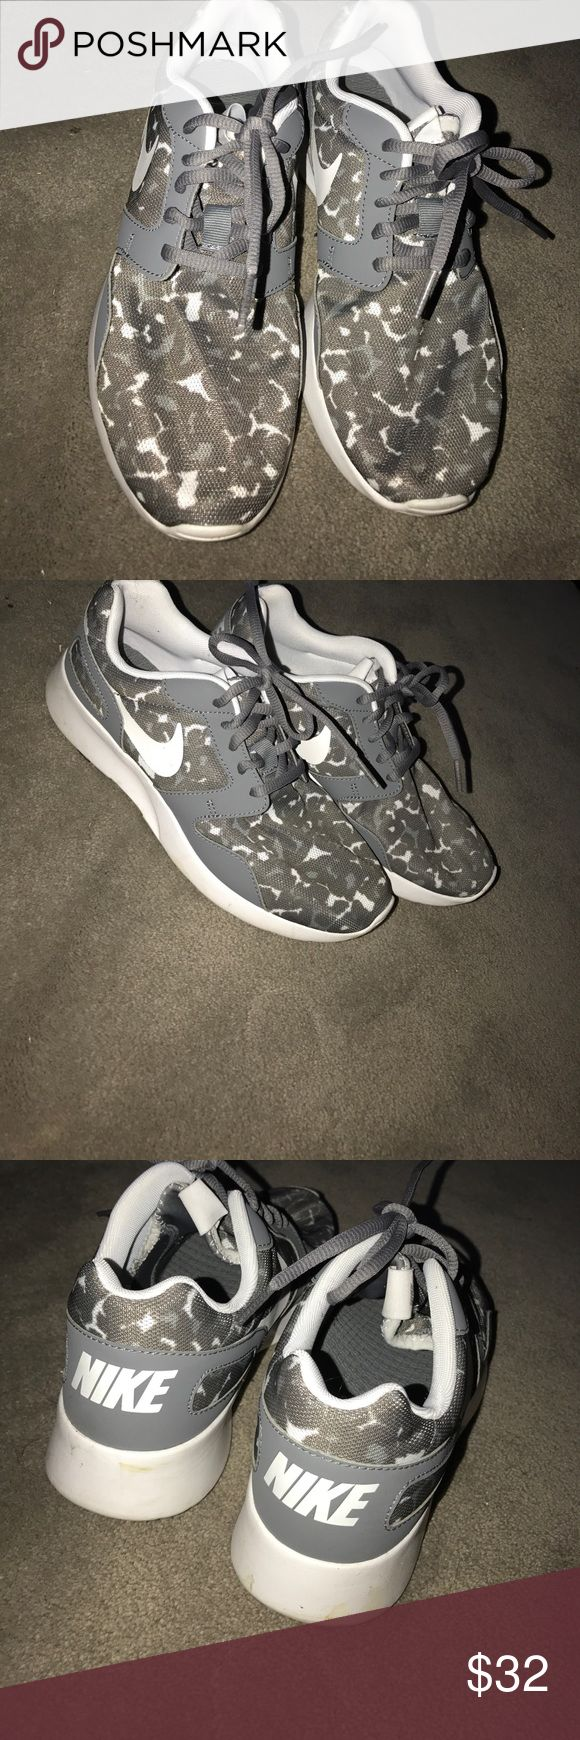 Cheetahs print Nike running shoes Super cute Nike running shoes grey and white cheetah print worn once no stains one slight dirt mark on heel which can be washed off. Offers always welcomed Nike Shoes Sneakers